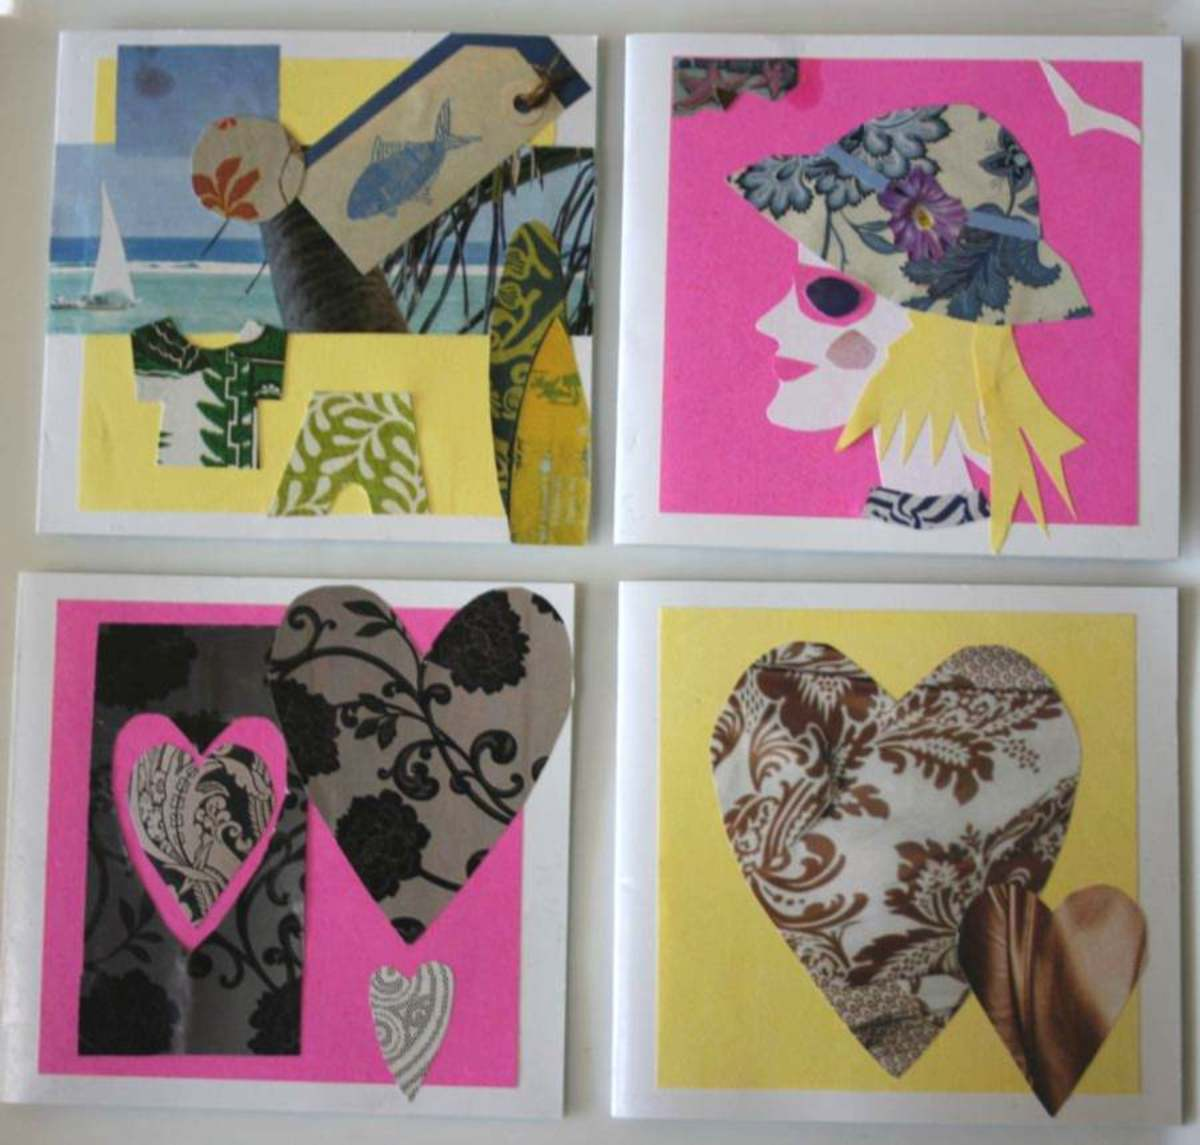 Do You Make Your Own Greeting Cards?